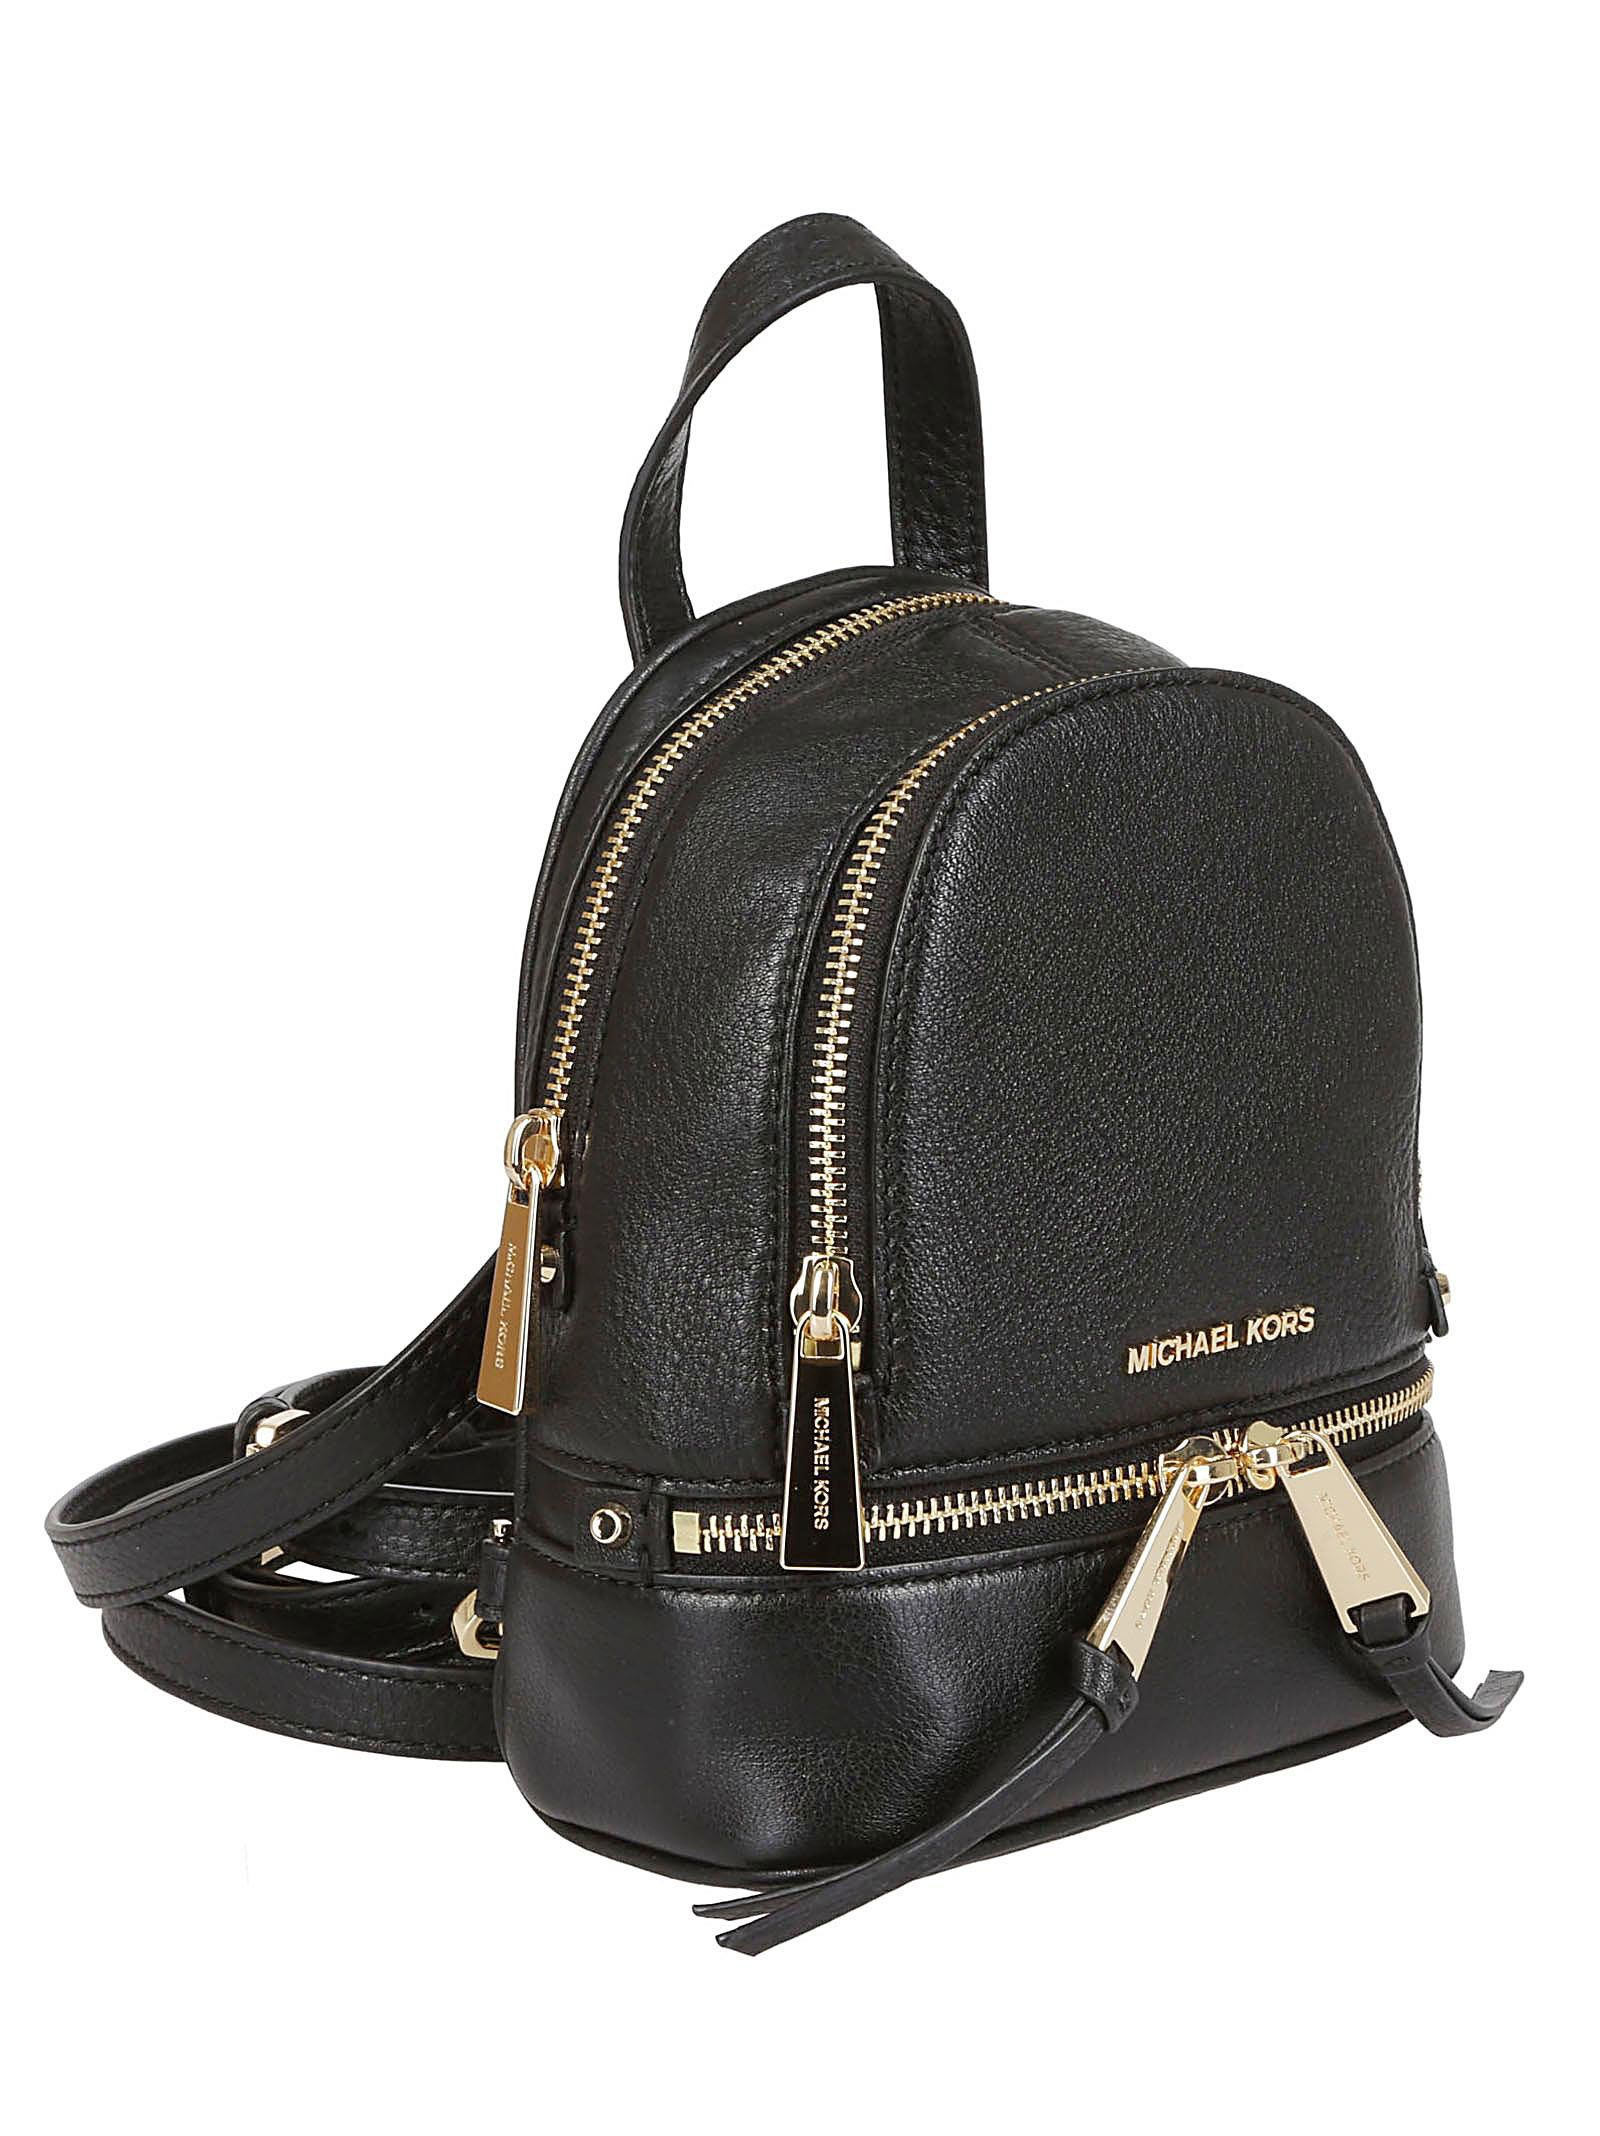 da61e5f56bf9 Michael Kors Michael Kors Rhea Mini Backpack - Nero/oro - 10815979 ...